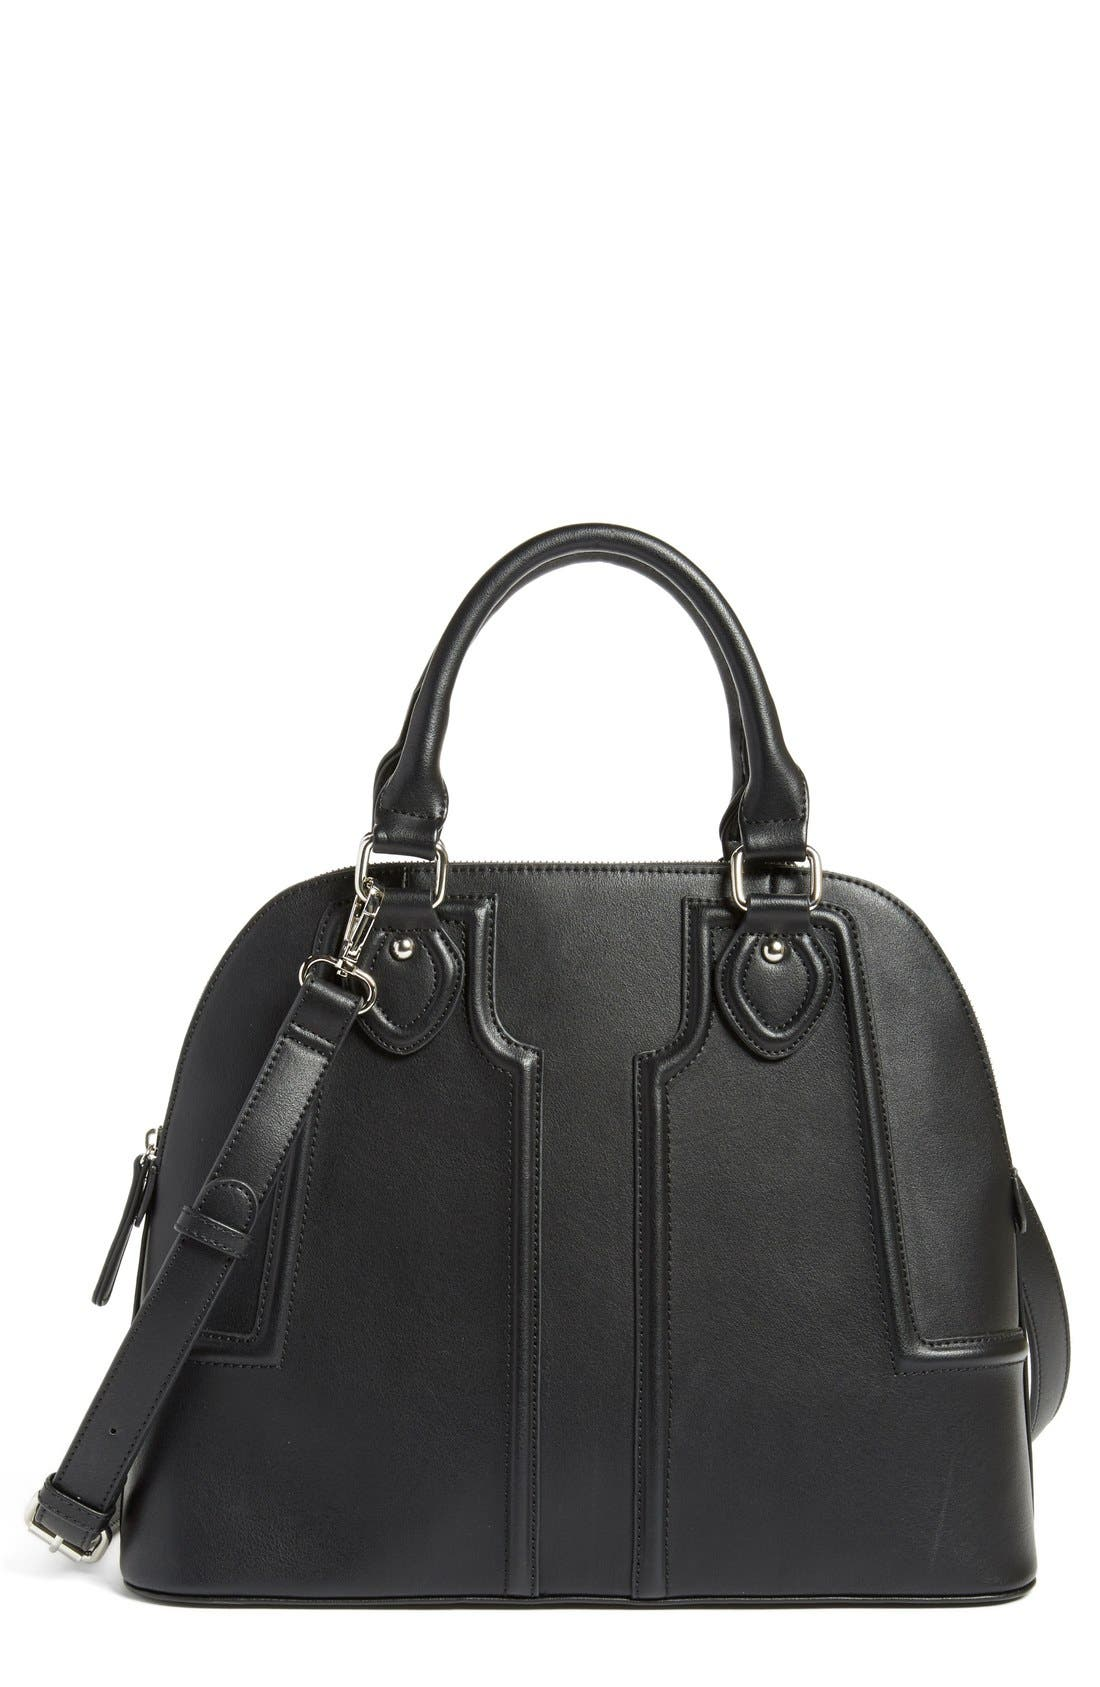 Alternate Image 1 Selected - Sole Society 'Marlow' Structured Dome Satchel